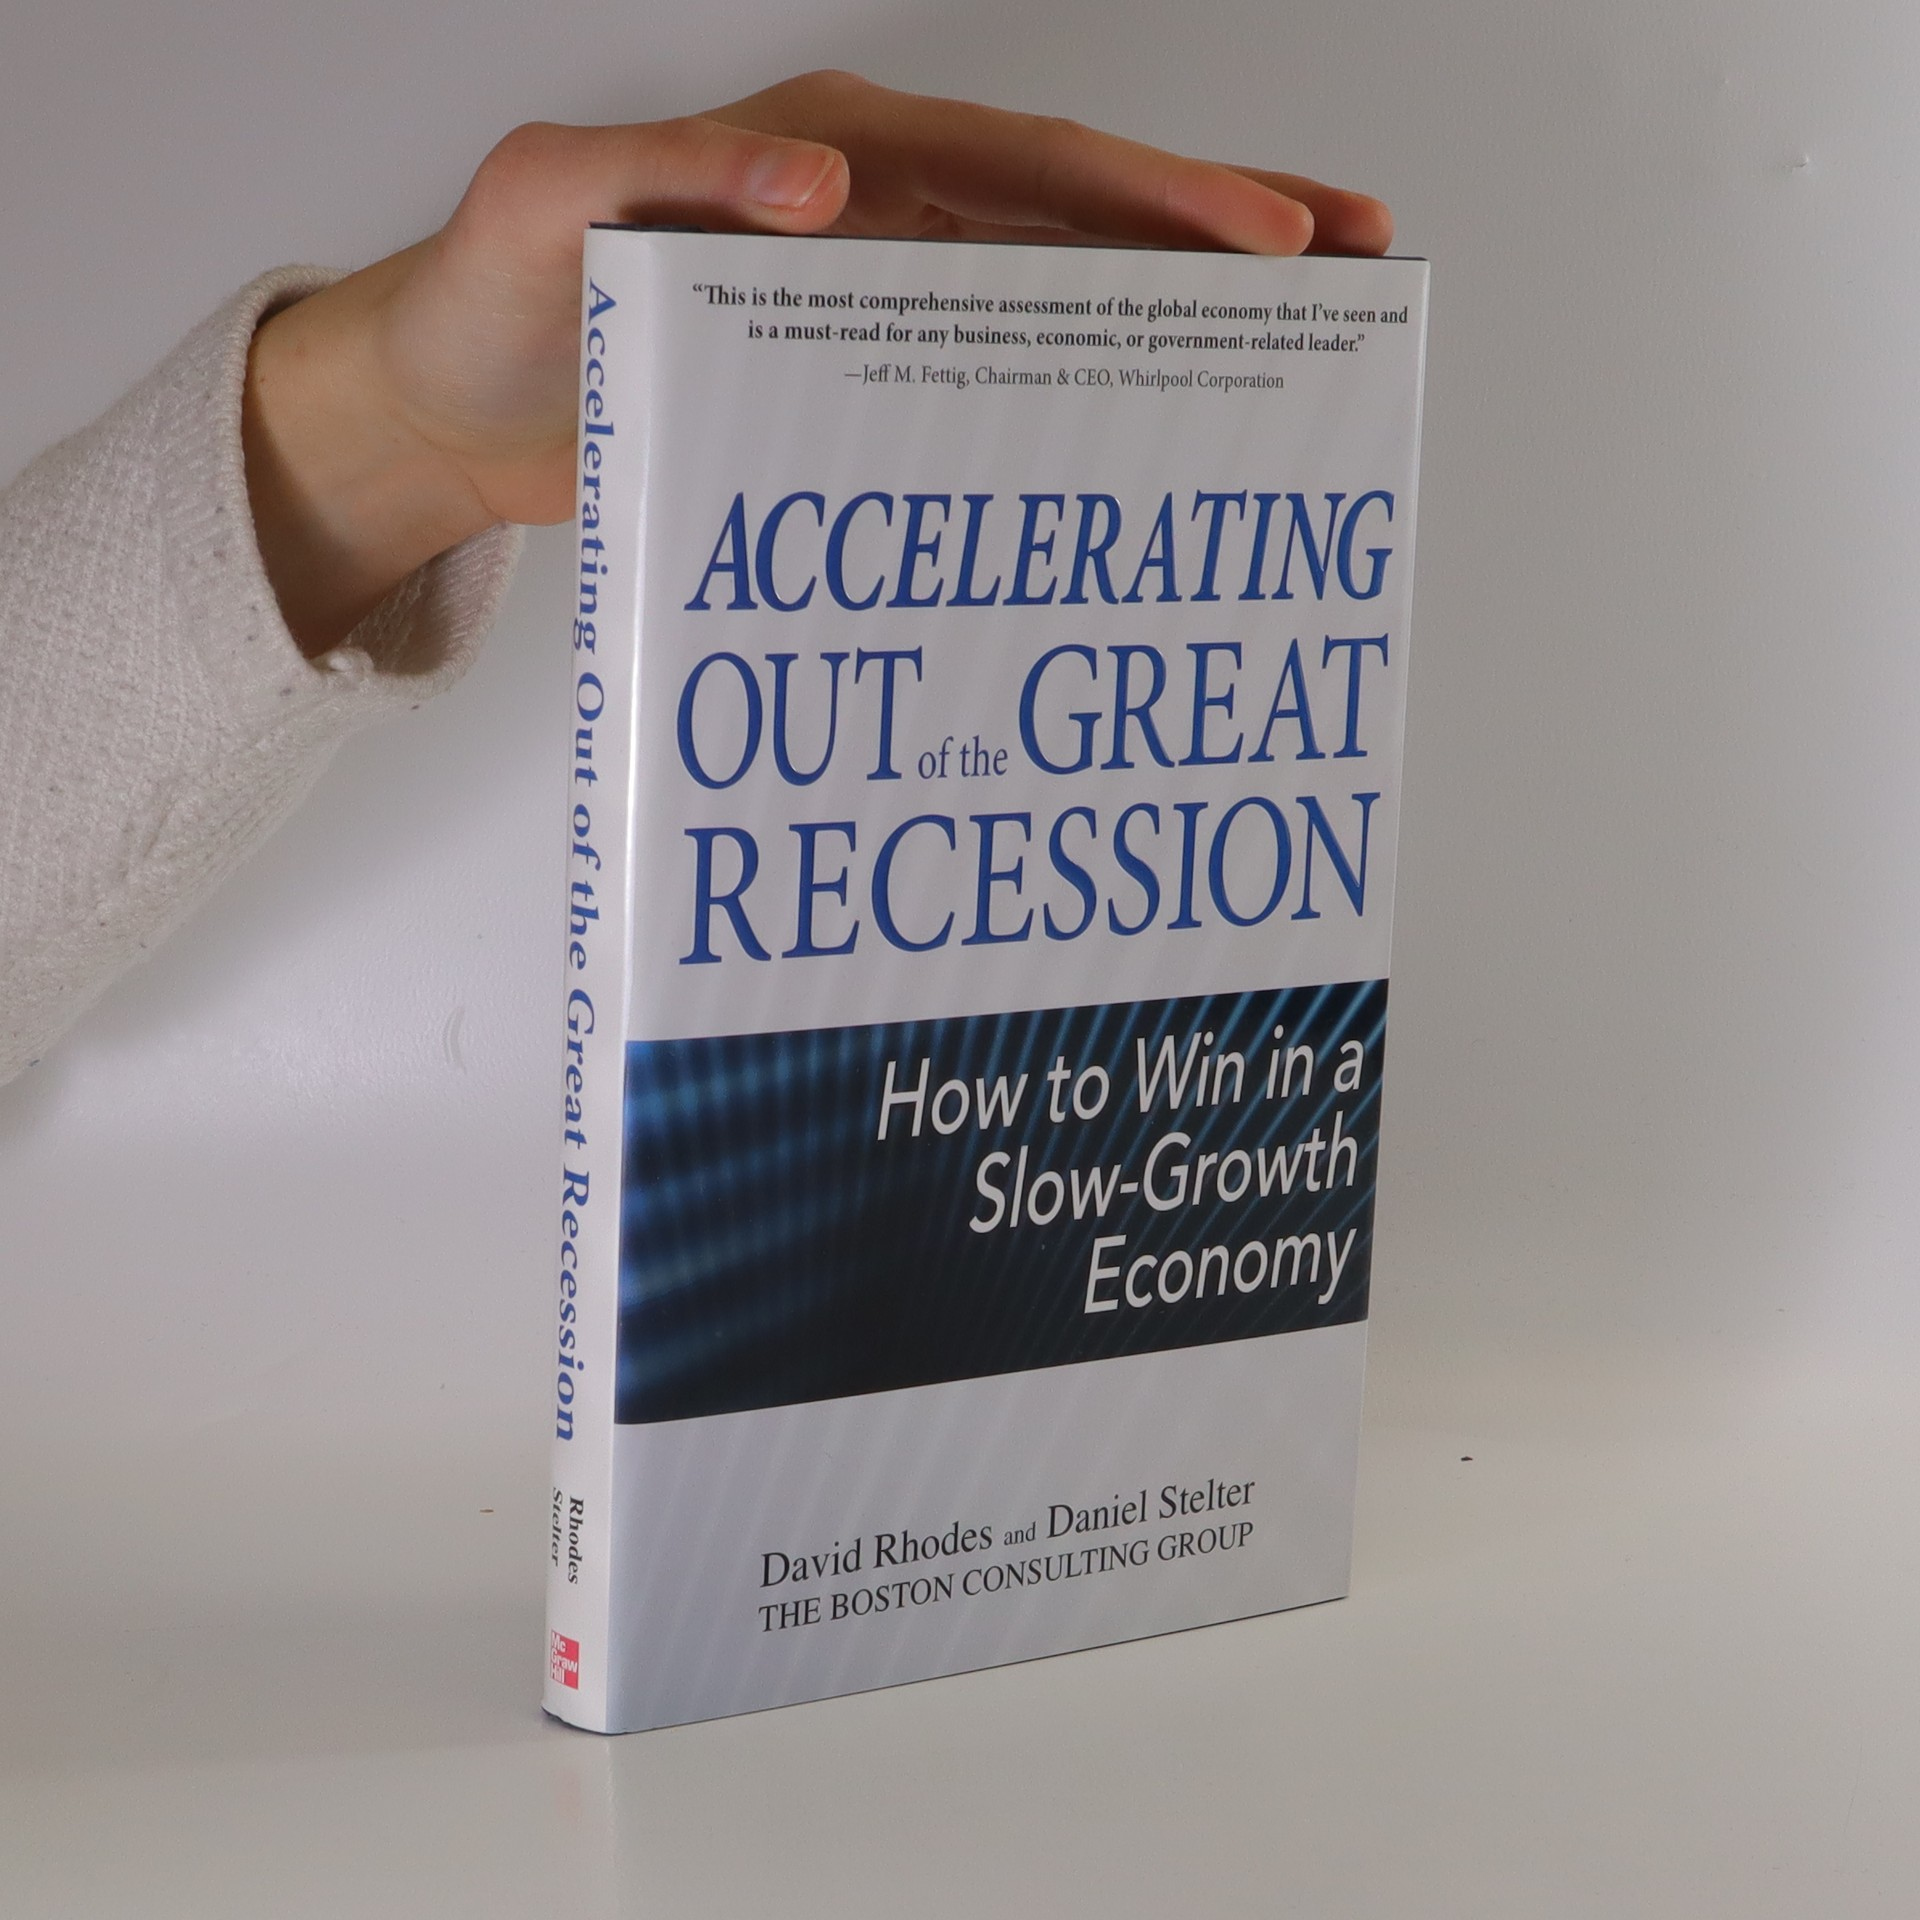 antikvární kniha Accelerating out of the great recession : how to win in a slow-growth economy, 2010